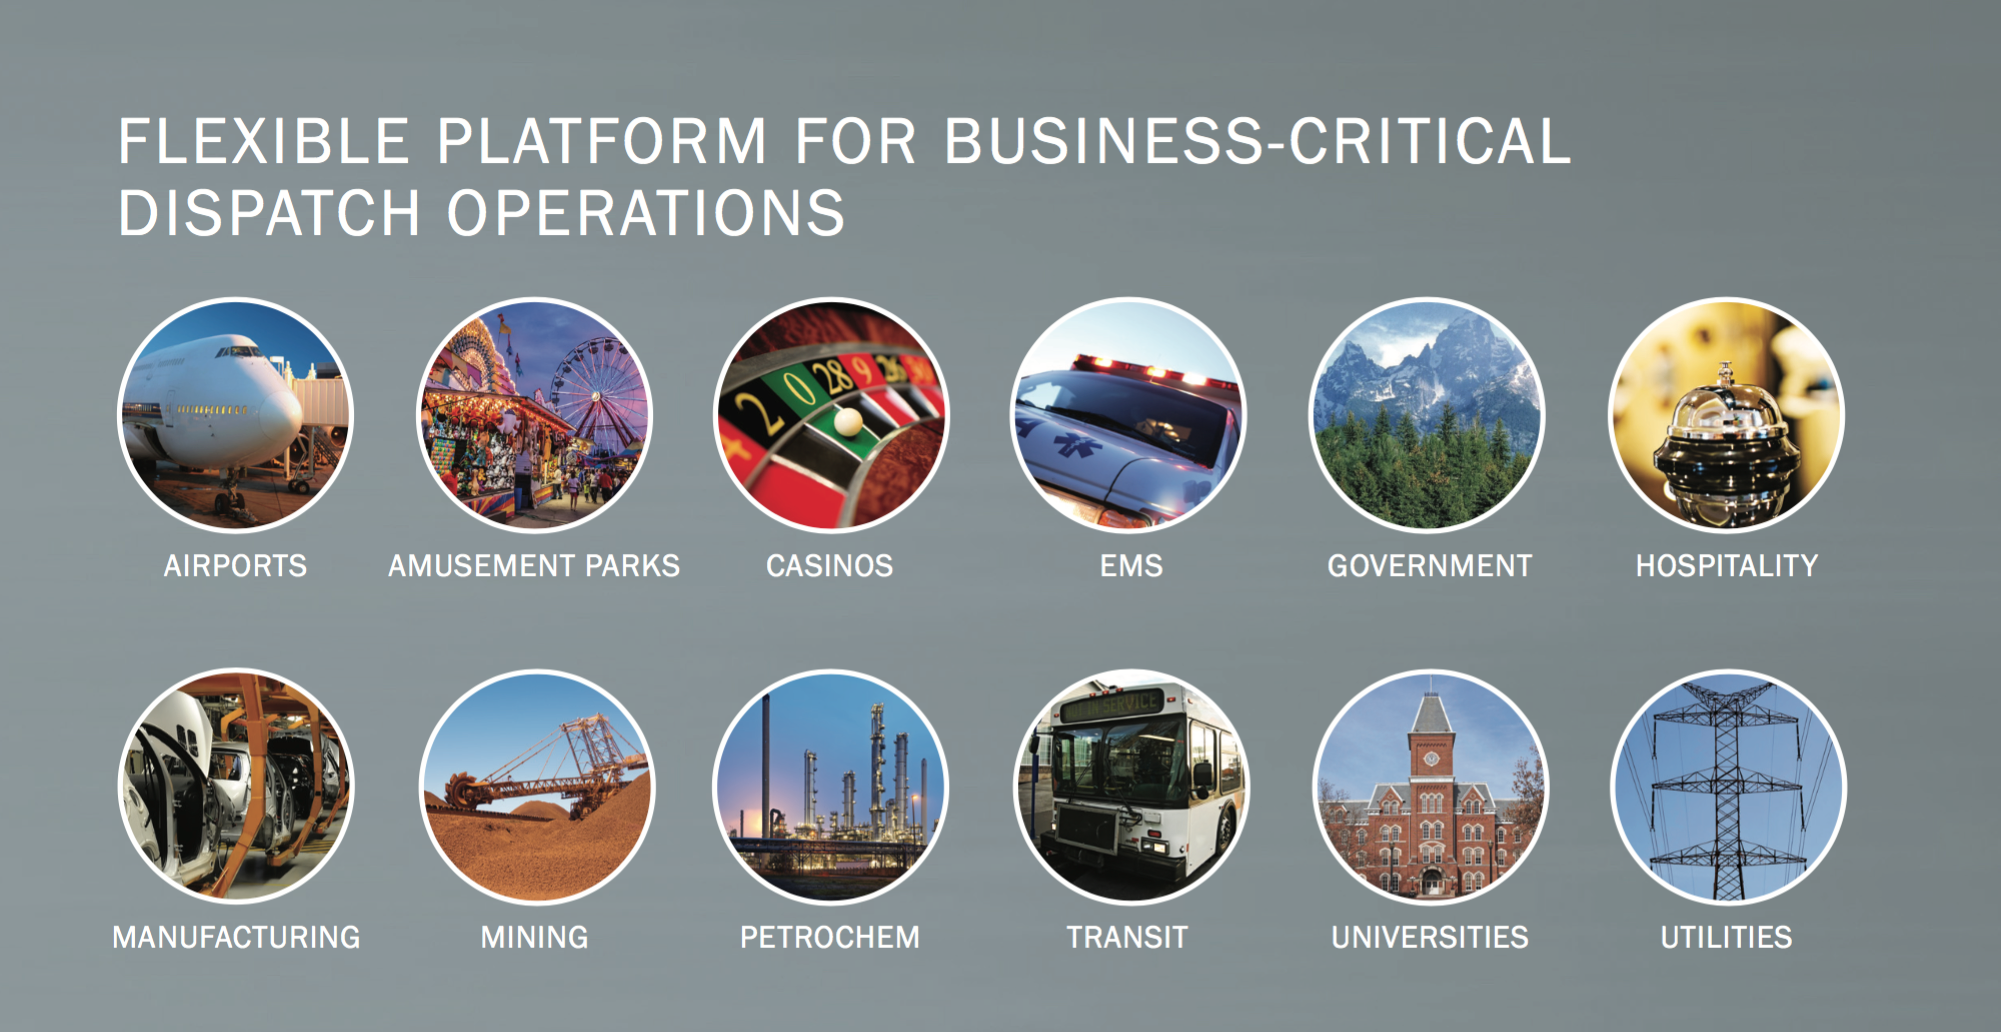 Business-critical industries served by Avtec